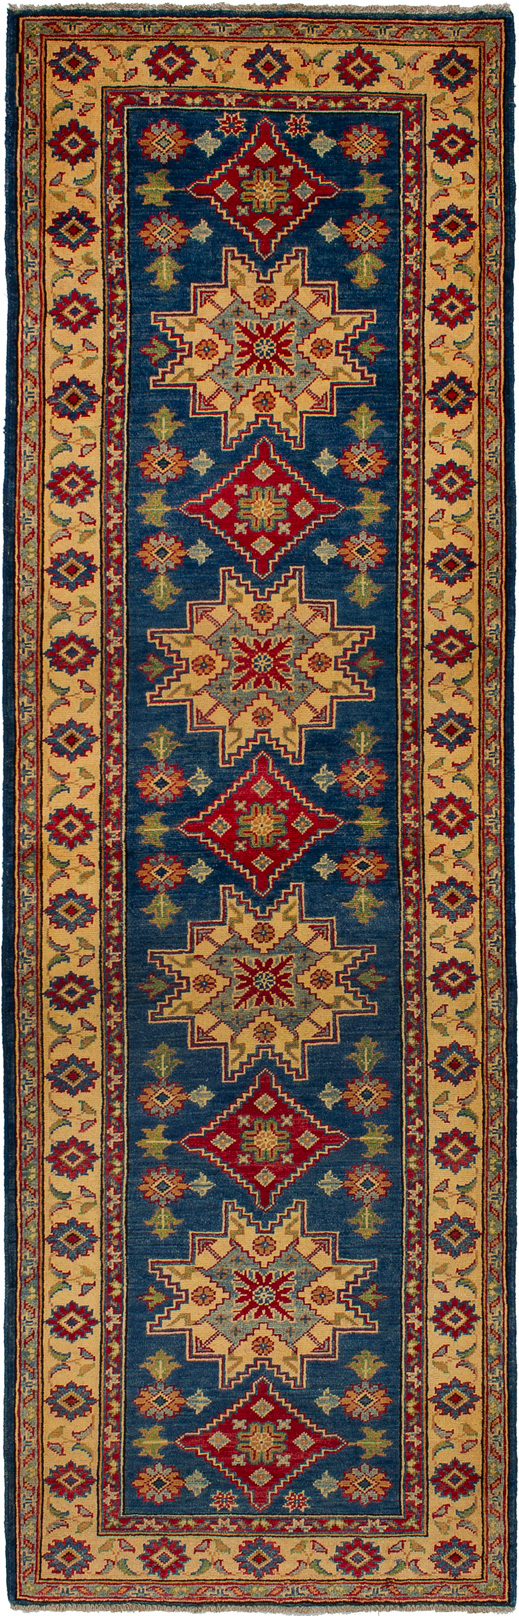 """Hand-knotted Finest Gazni Blue Wool Rug 2'10"""" x 9'0"""" Size: 2'10"""" x 9'0"""""""